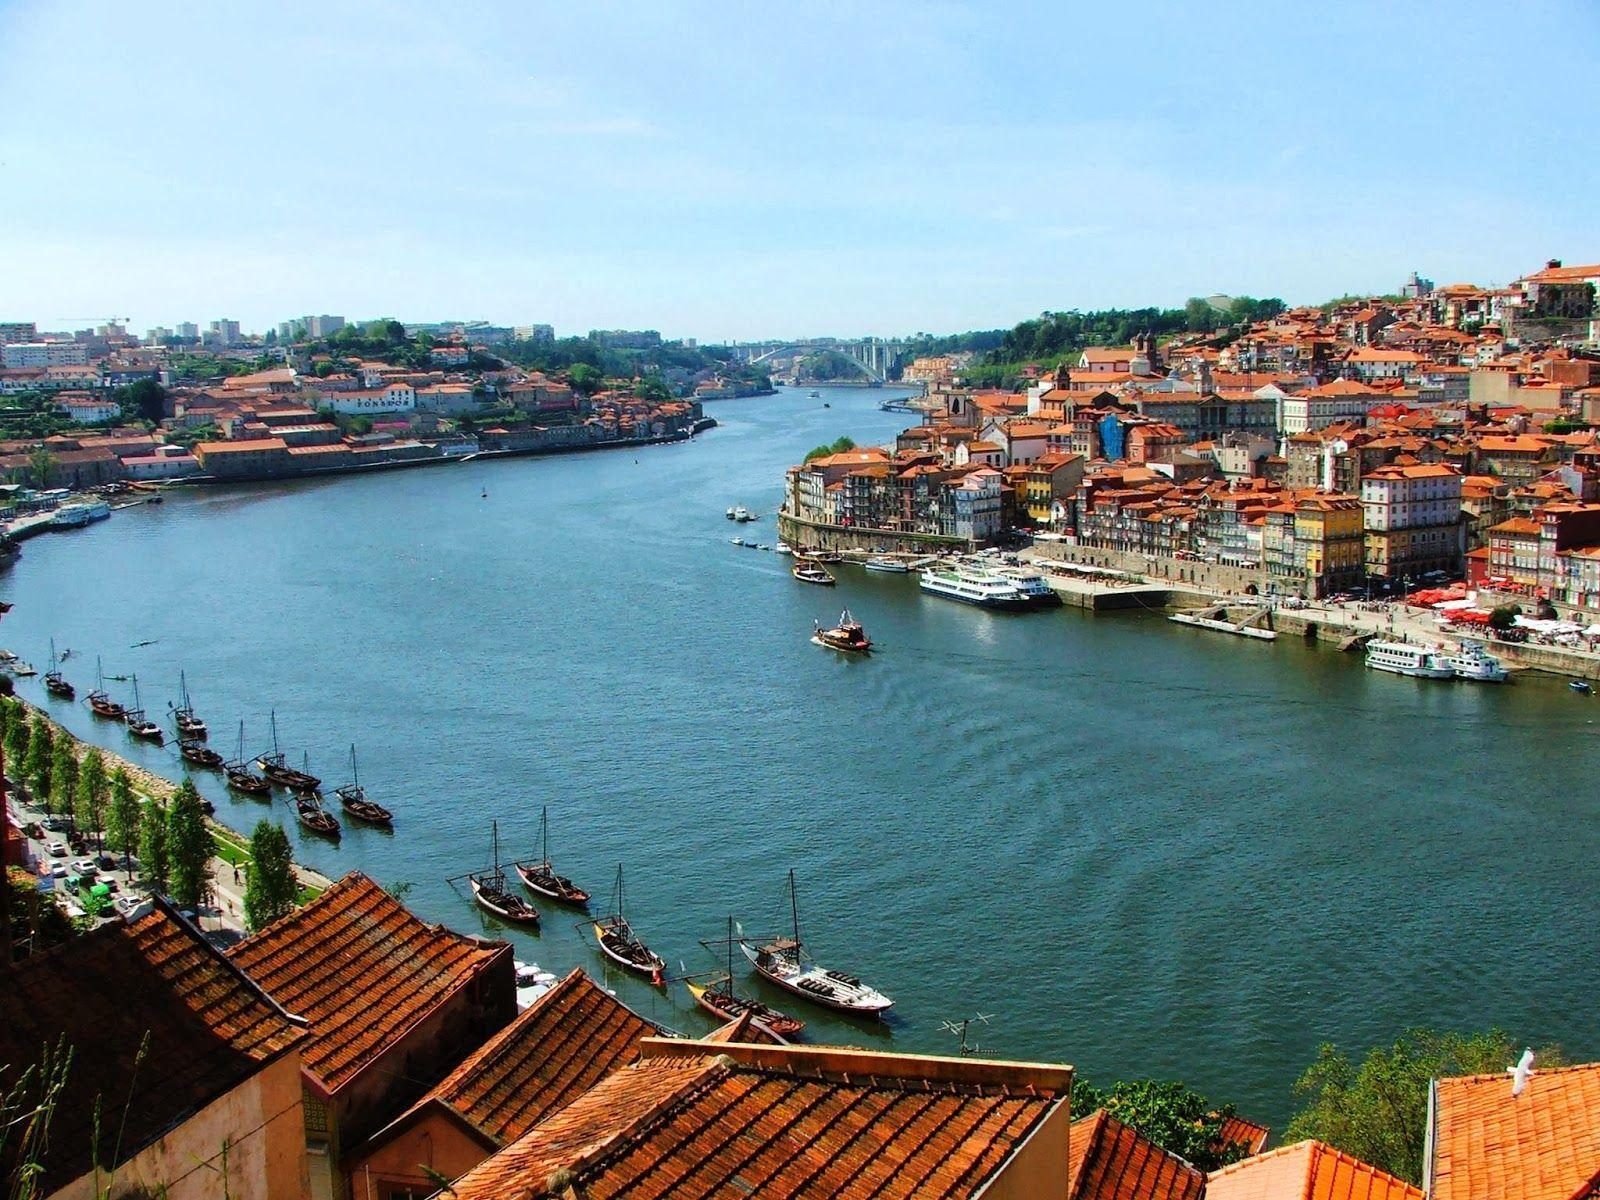 Porto HD Picture High Resolution Wallpapers / Wallpapers Porto 12506